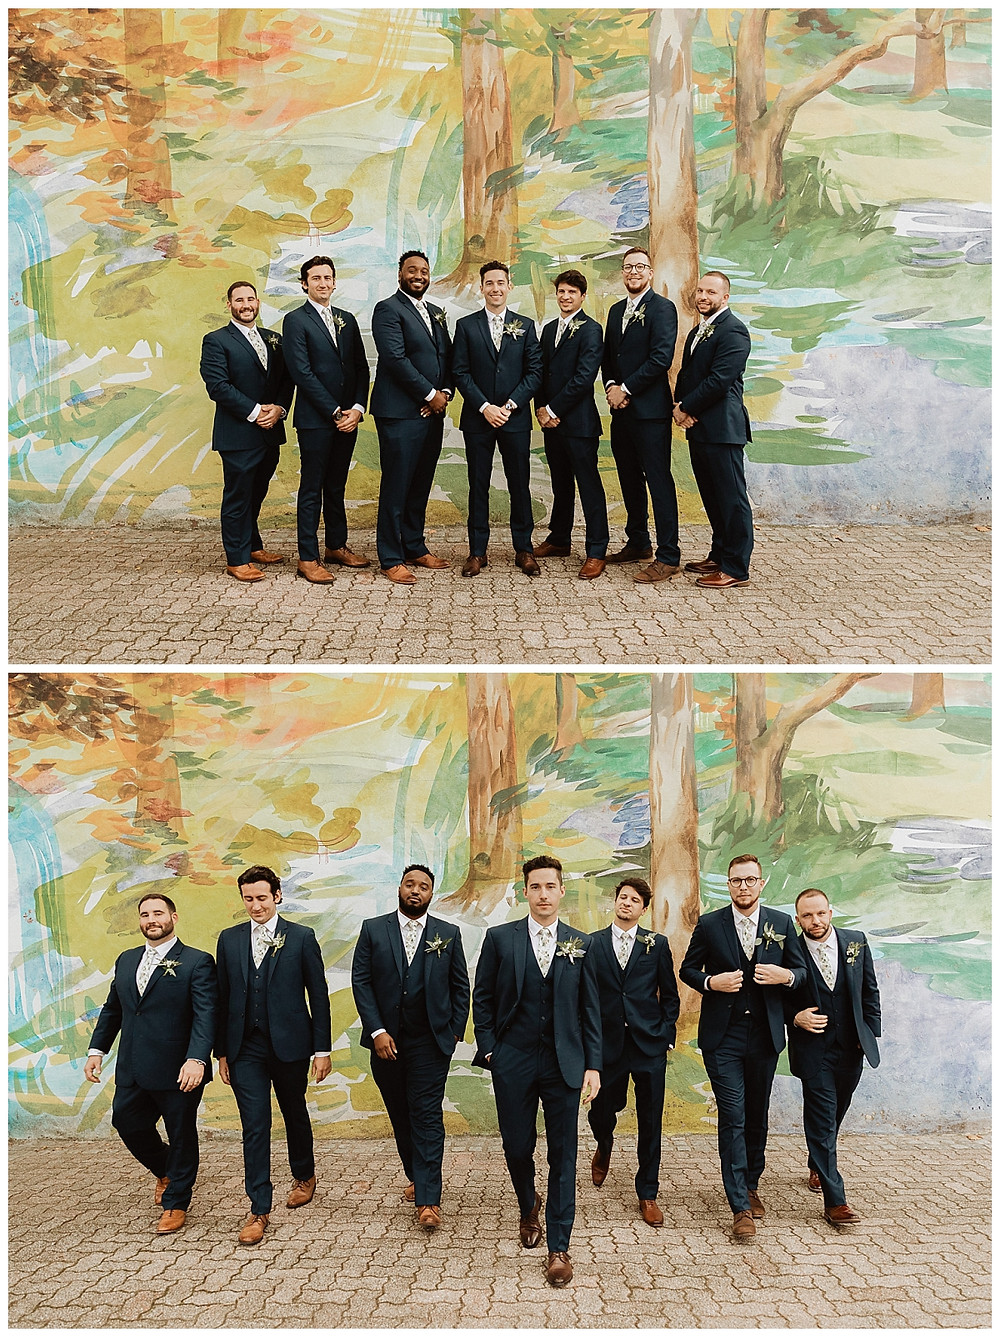 Wedding Party Portraits in front of Painted Mural